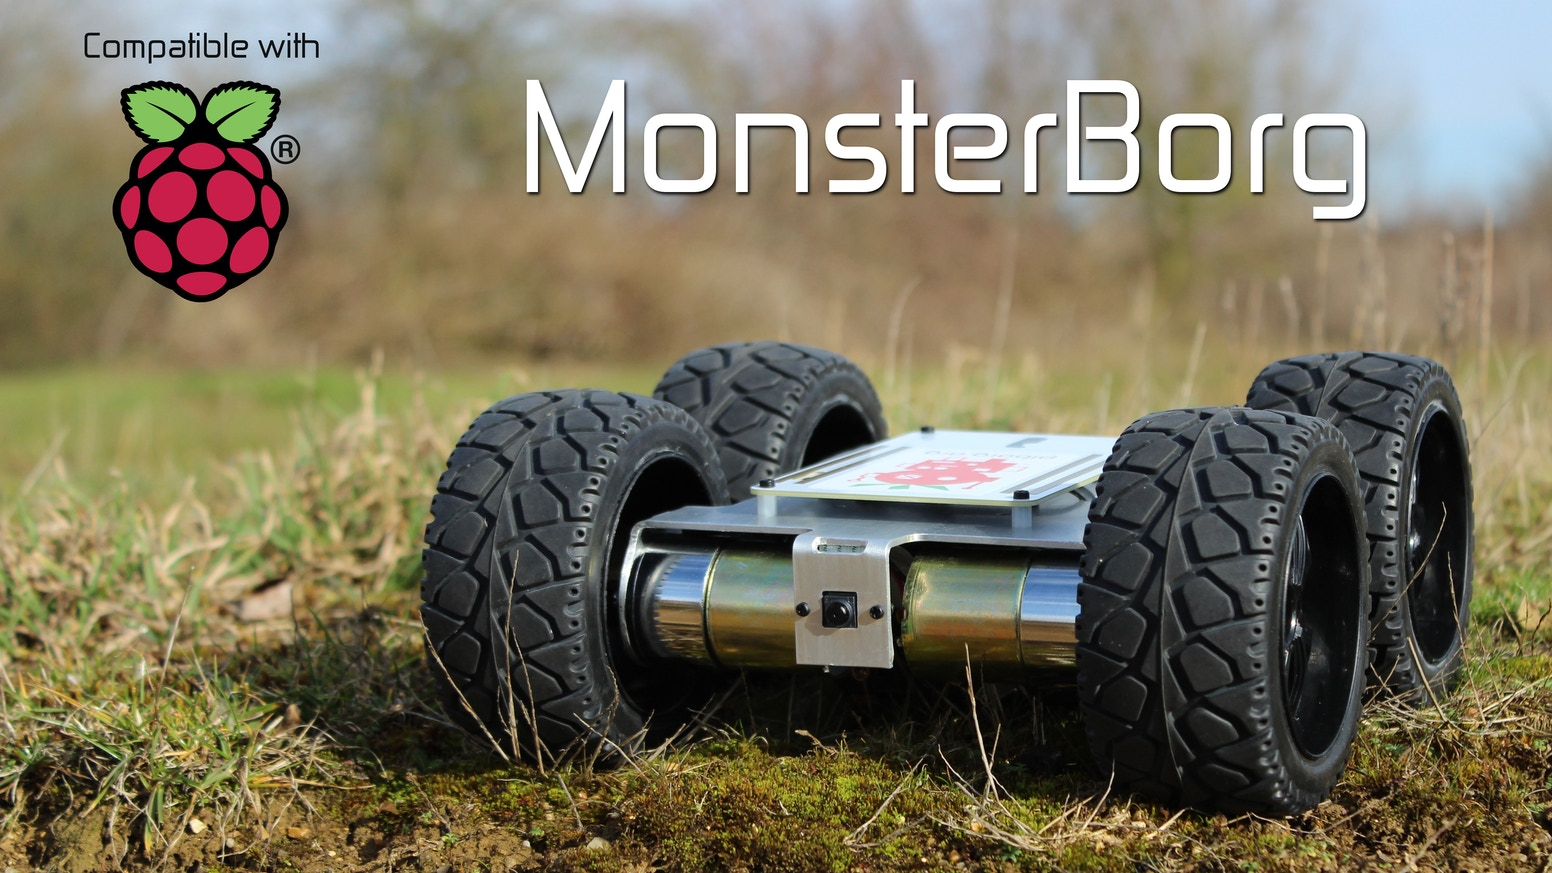 The Ultimate Pi Robot. Aluminium chassis, off-road wheels, fast motors, self-driving code and a powerful new motor controller.